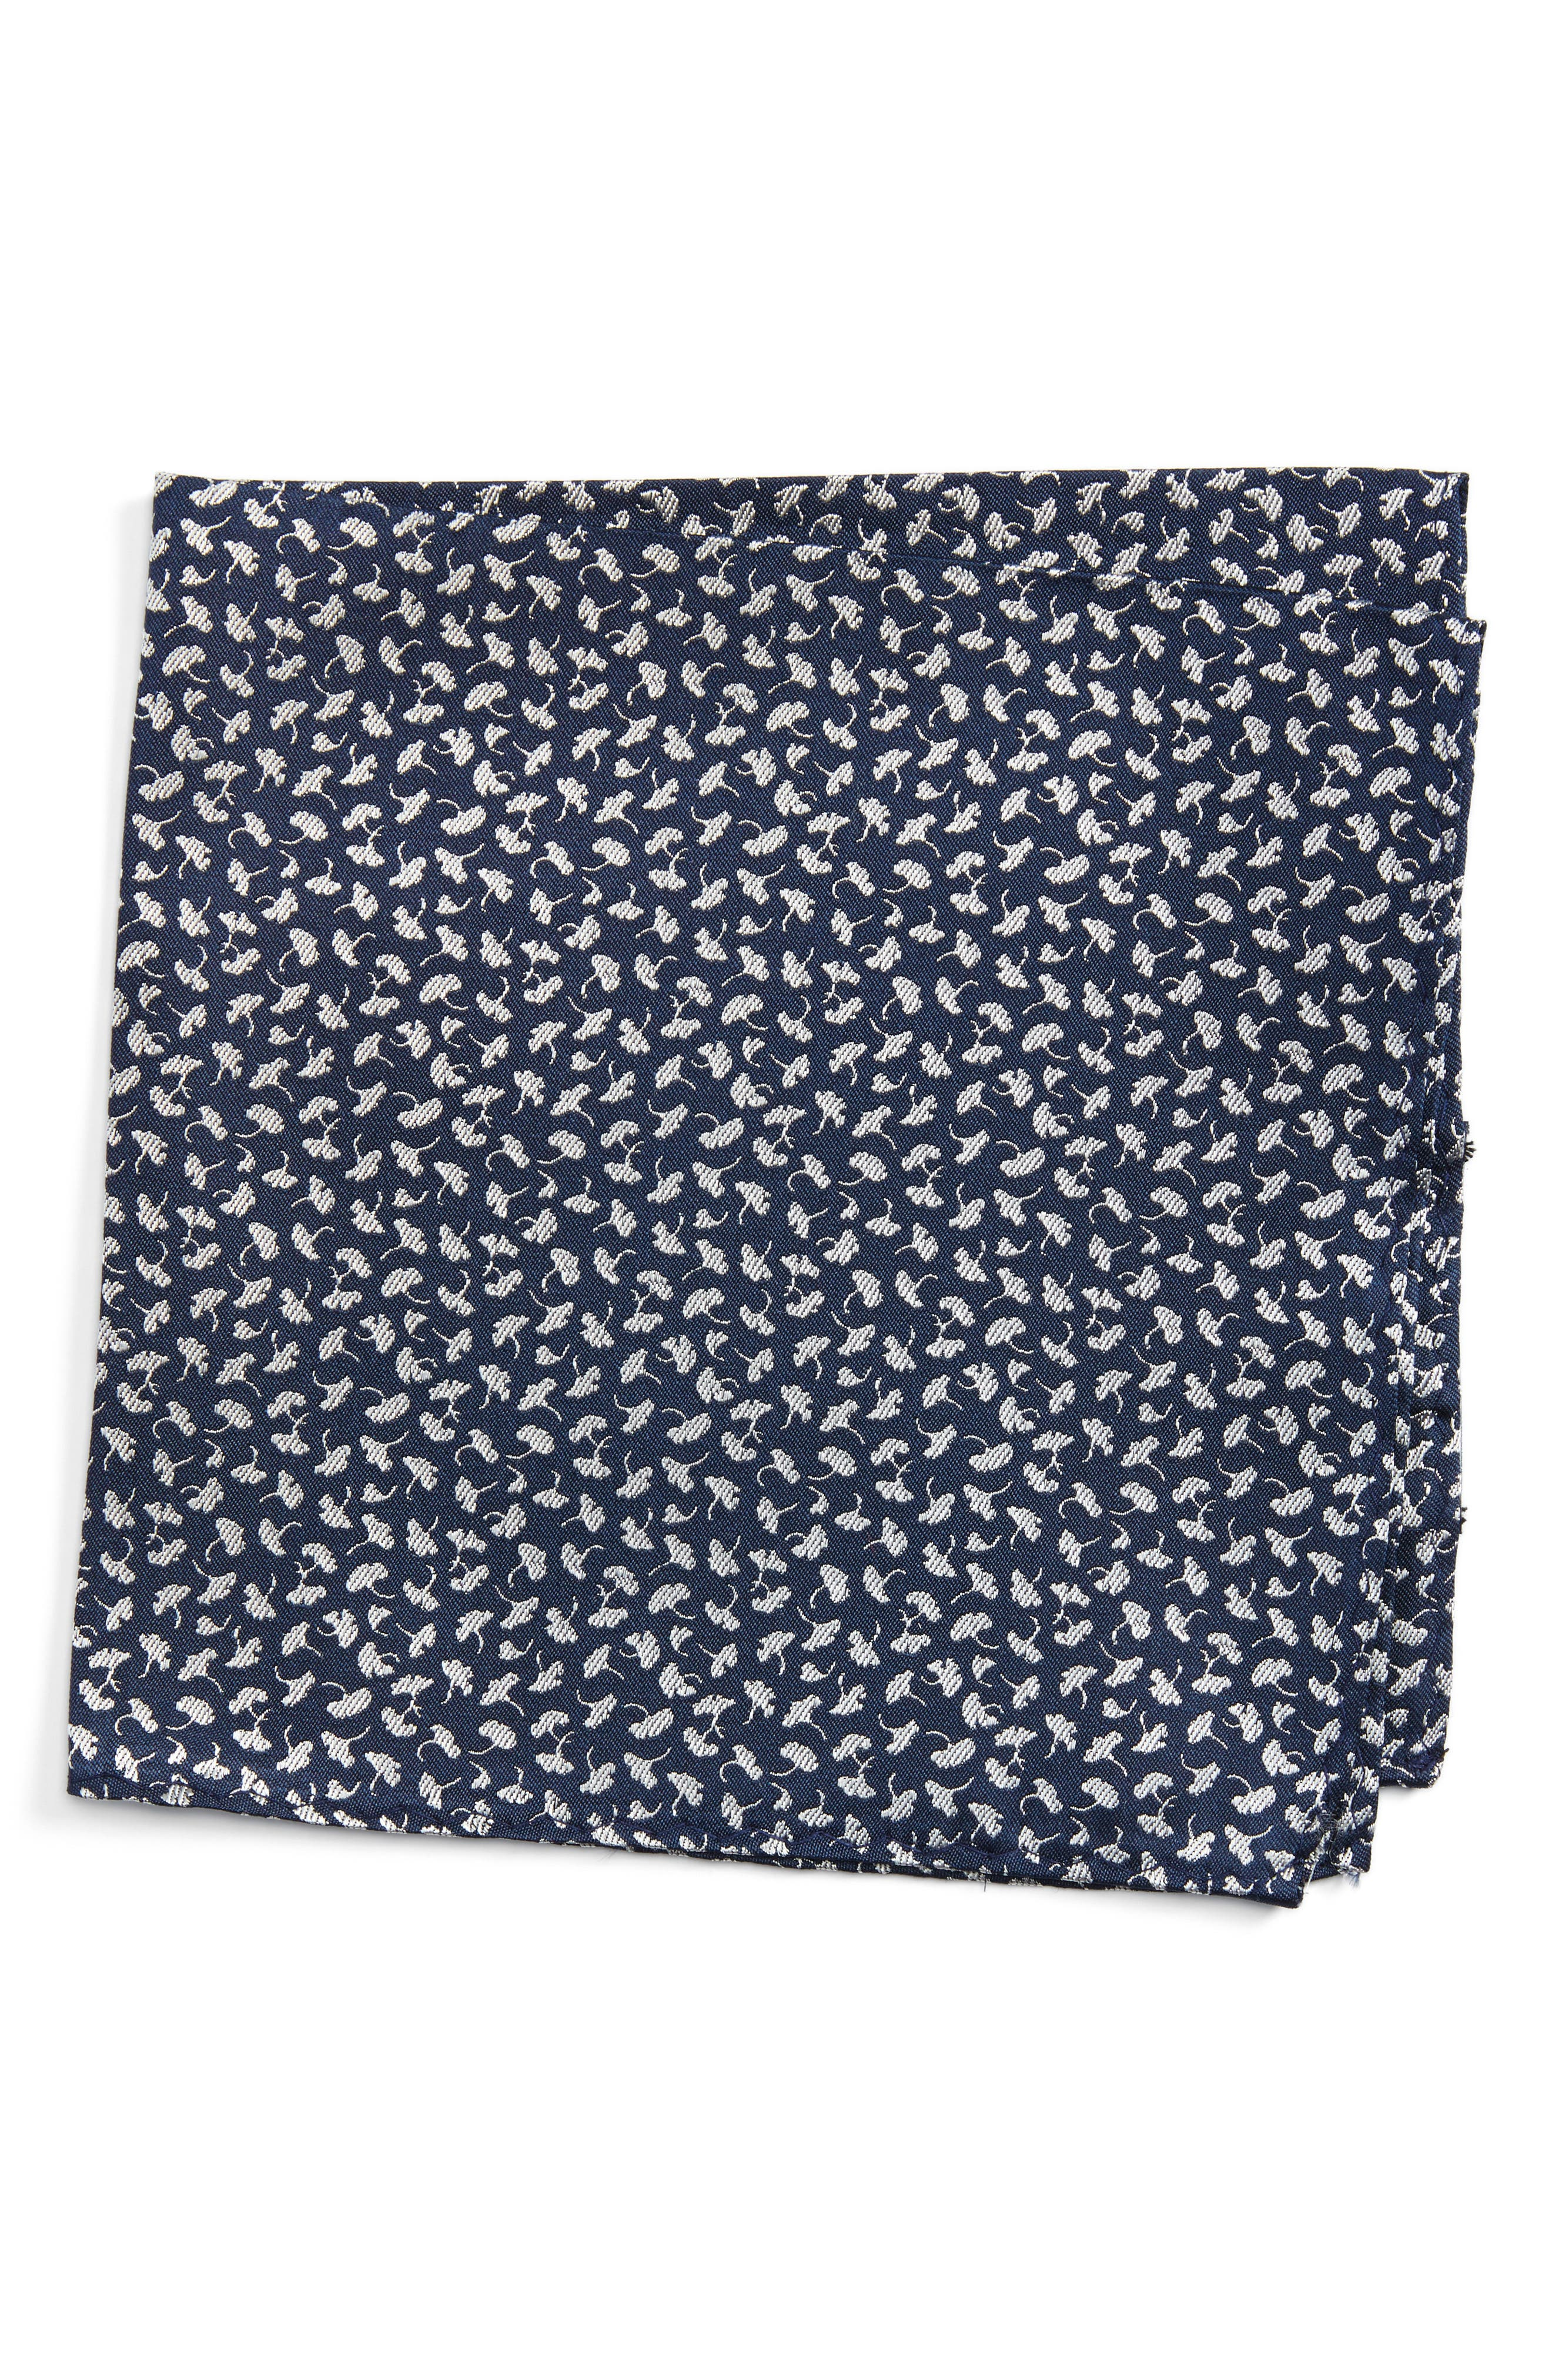 Main Image - The Tie Bar Floral Silk Pocket Square